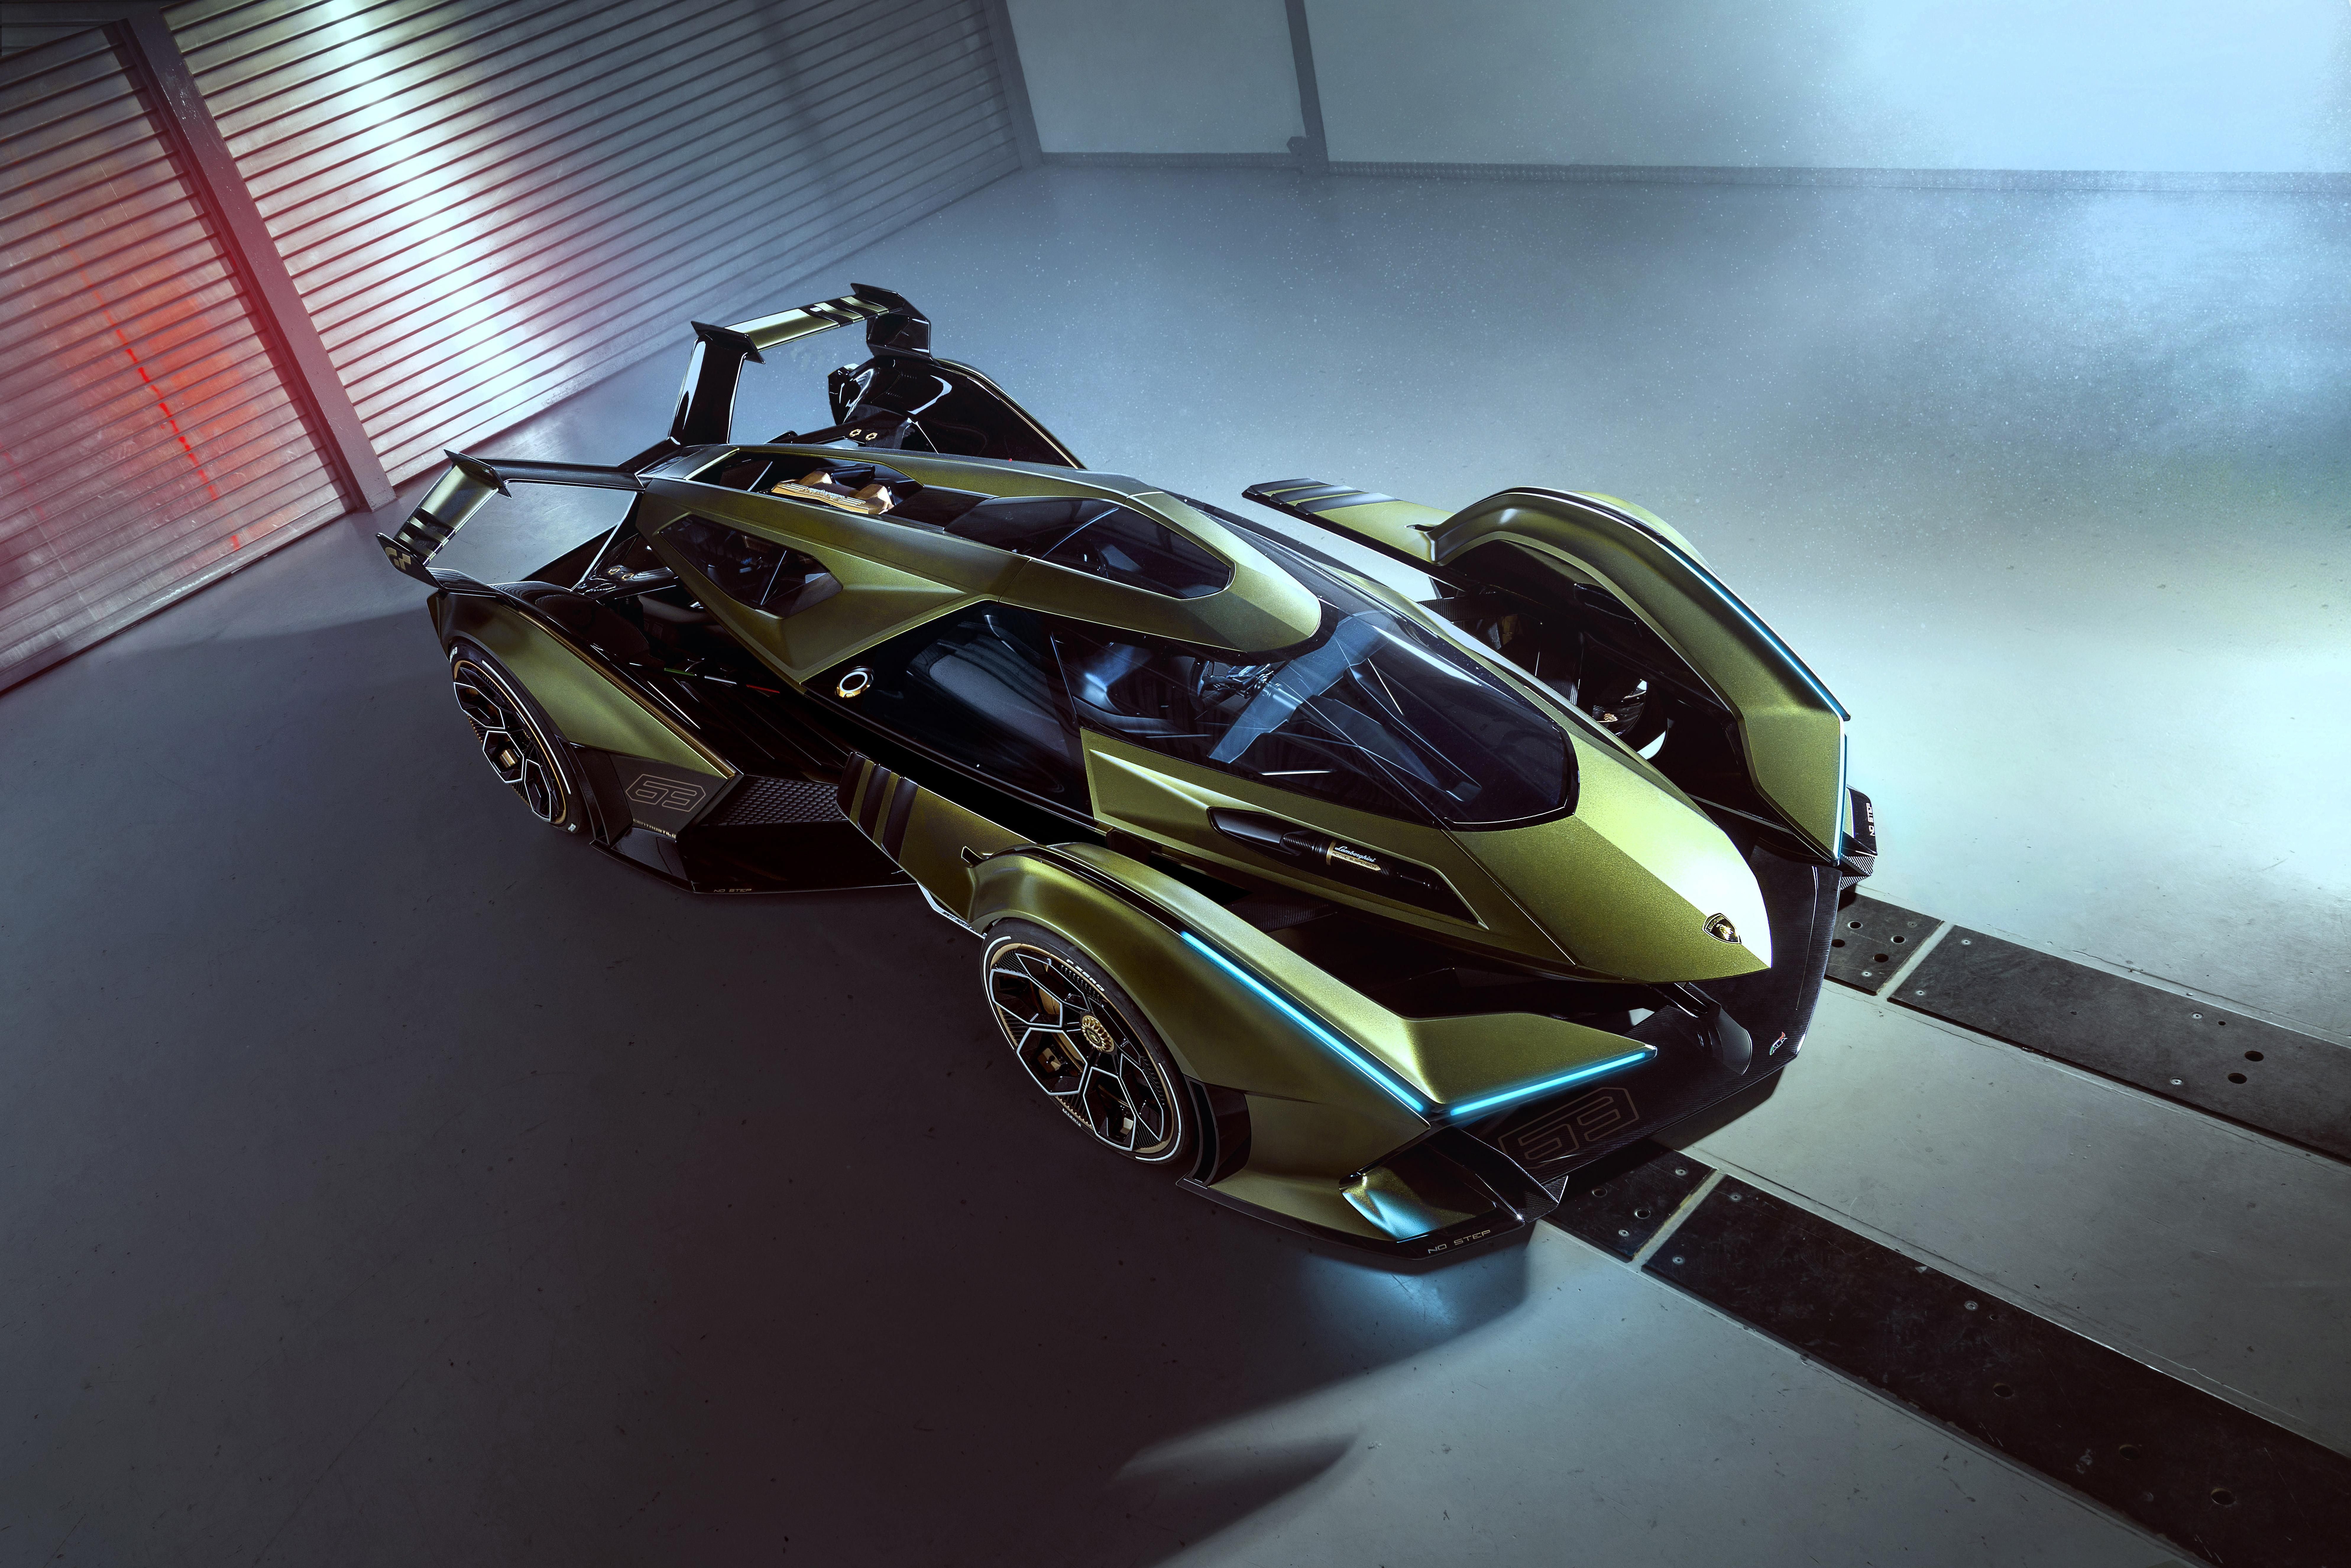 Lambo V12 Vision Gran Turismo Concept Is Basically a Fighter Jet